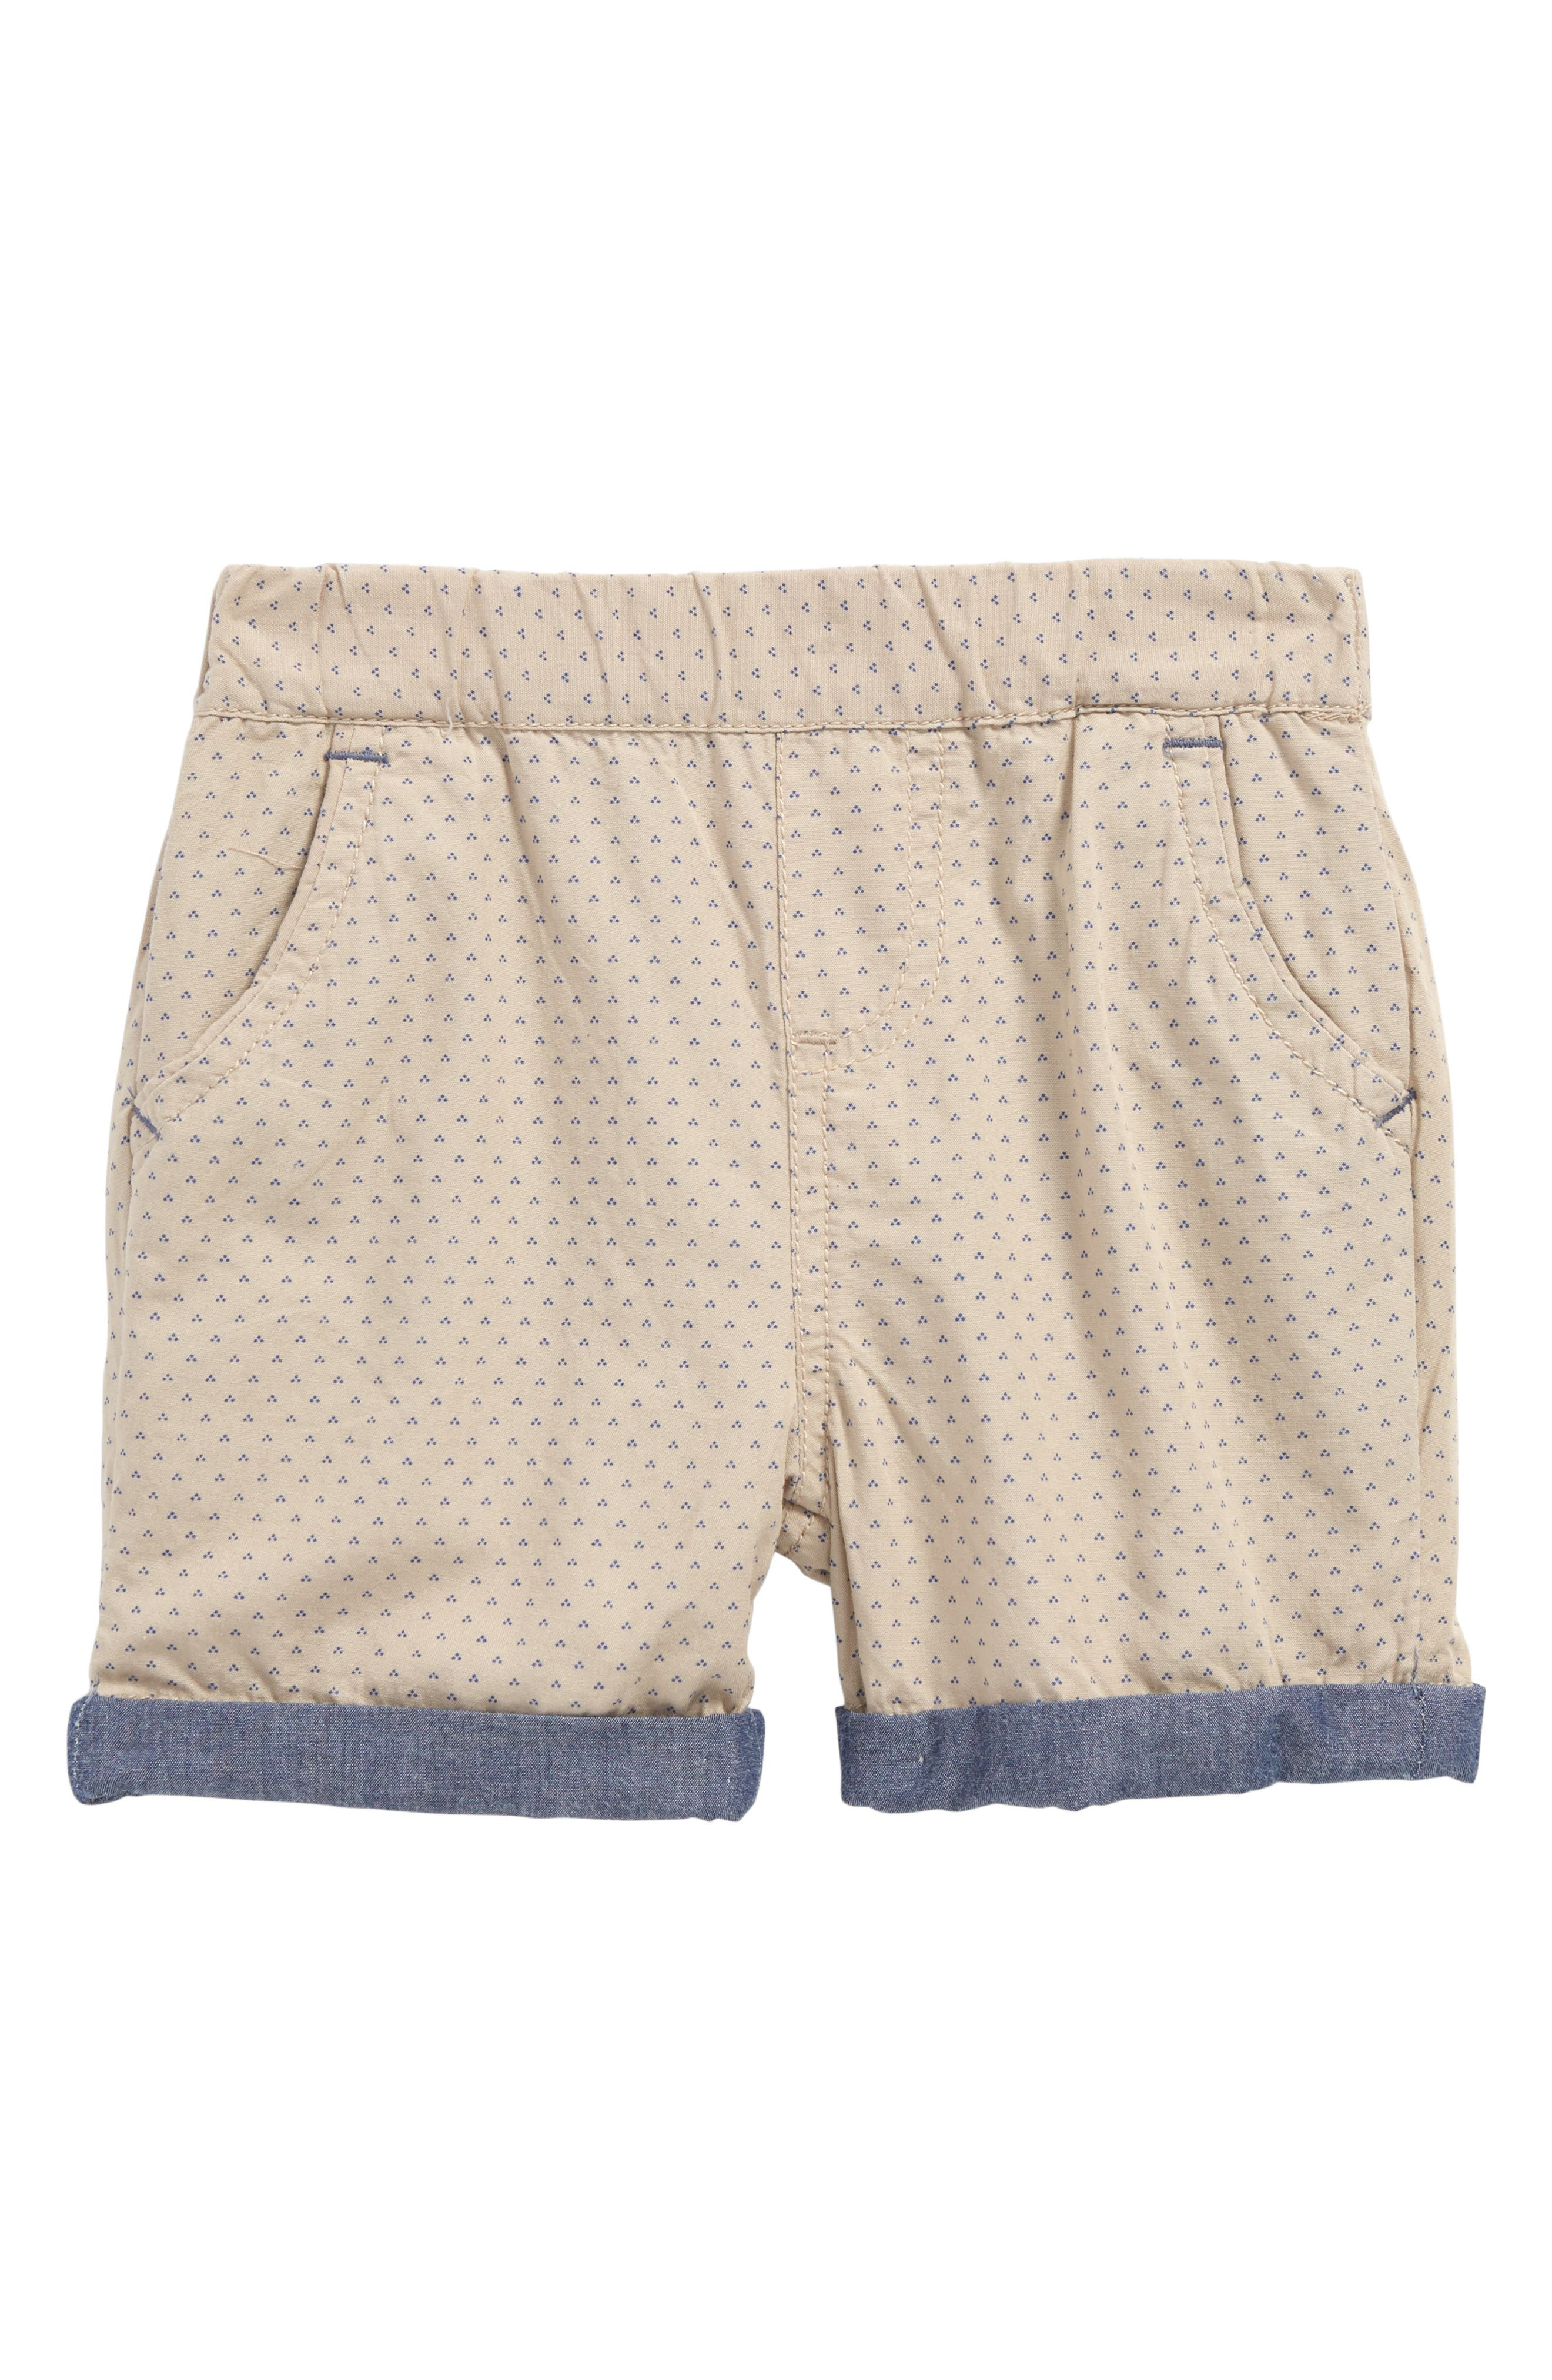 Drew Shorts,                         Main,                         color, 250